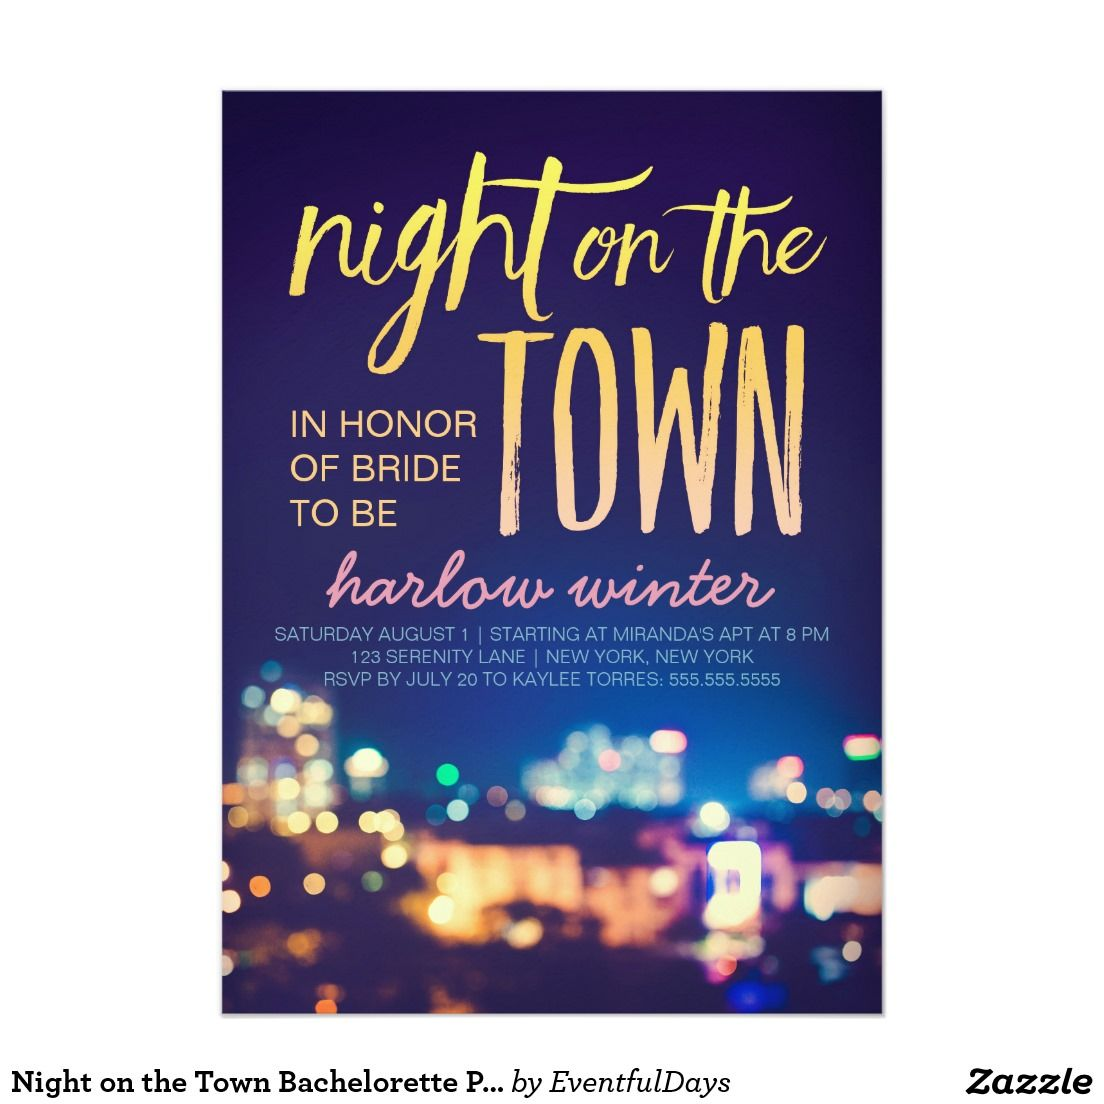 Night On The Town Bachelorette Party Card| Bachelorette Party/ Weekend  Invitations! Shop The Hundreds Of Wedding And Bachelorette Invitation  Designs On